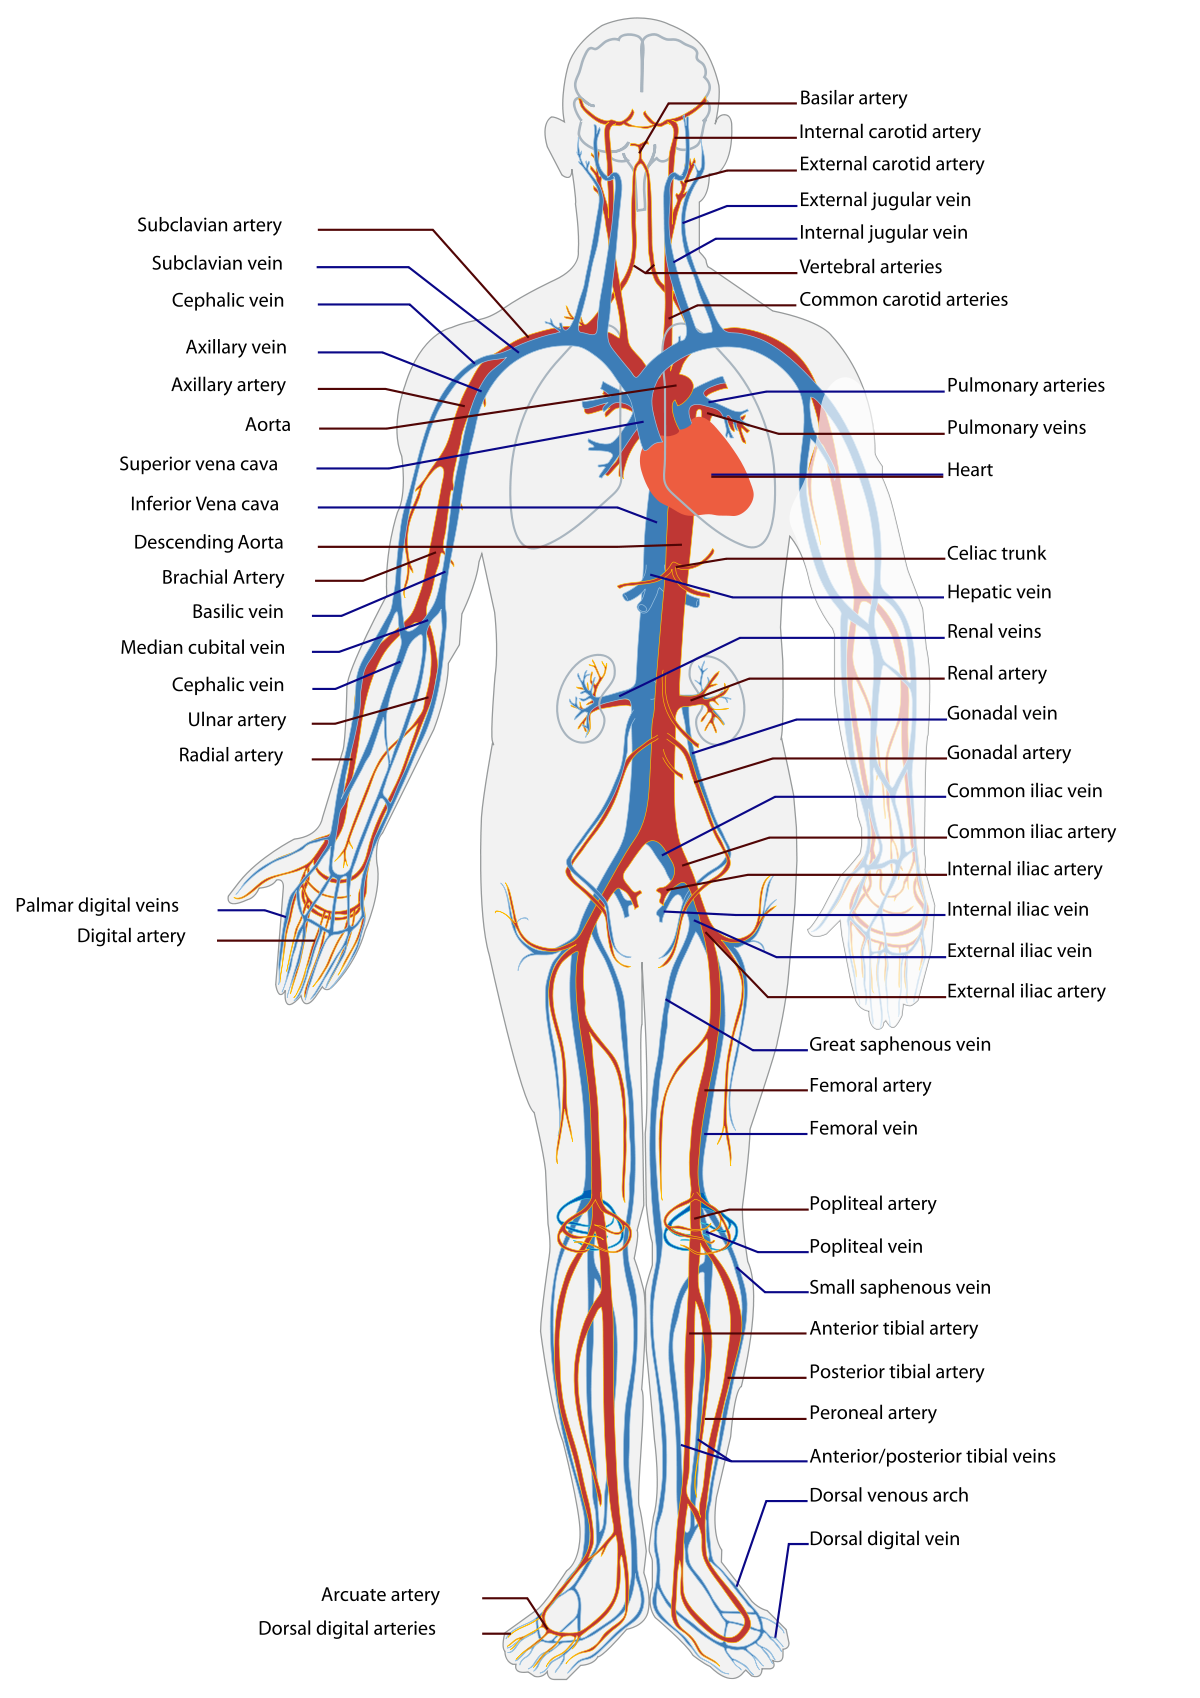 Circulatory system - Wikipedia | Medicine | Pinterest | Circulatory ...